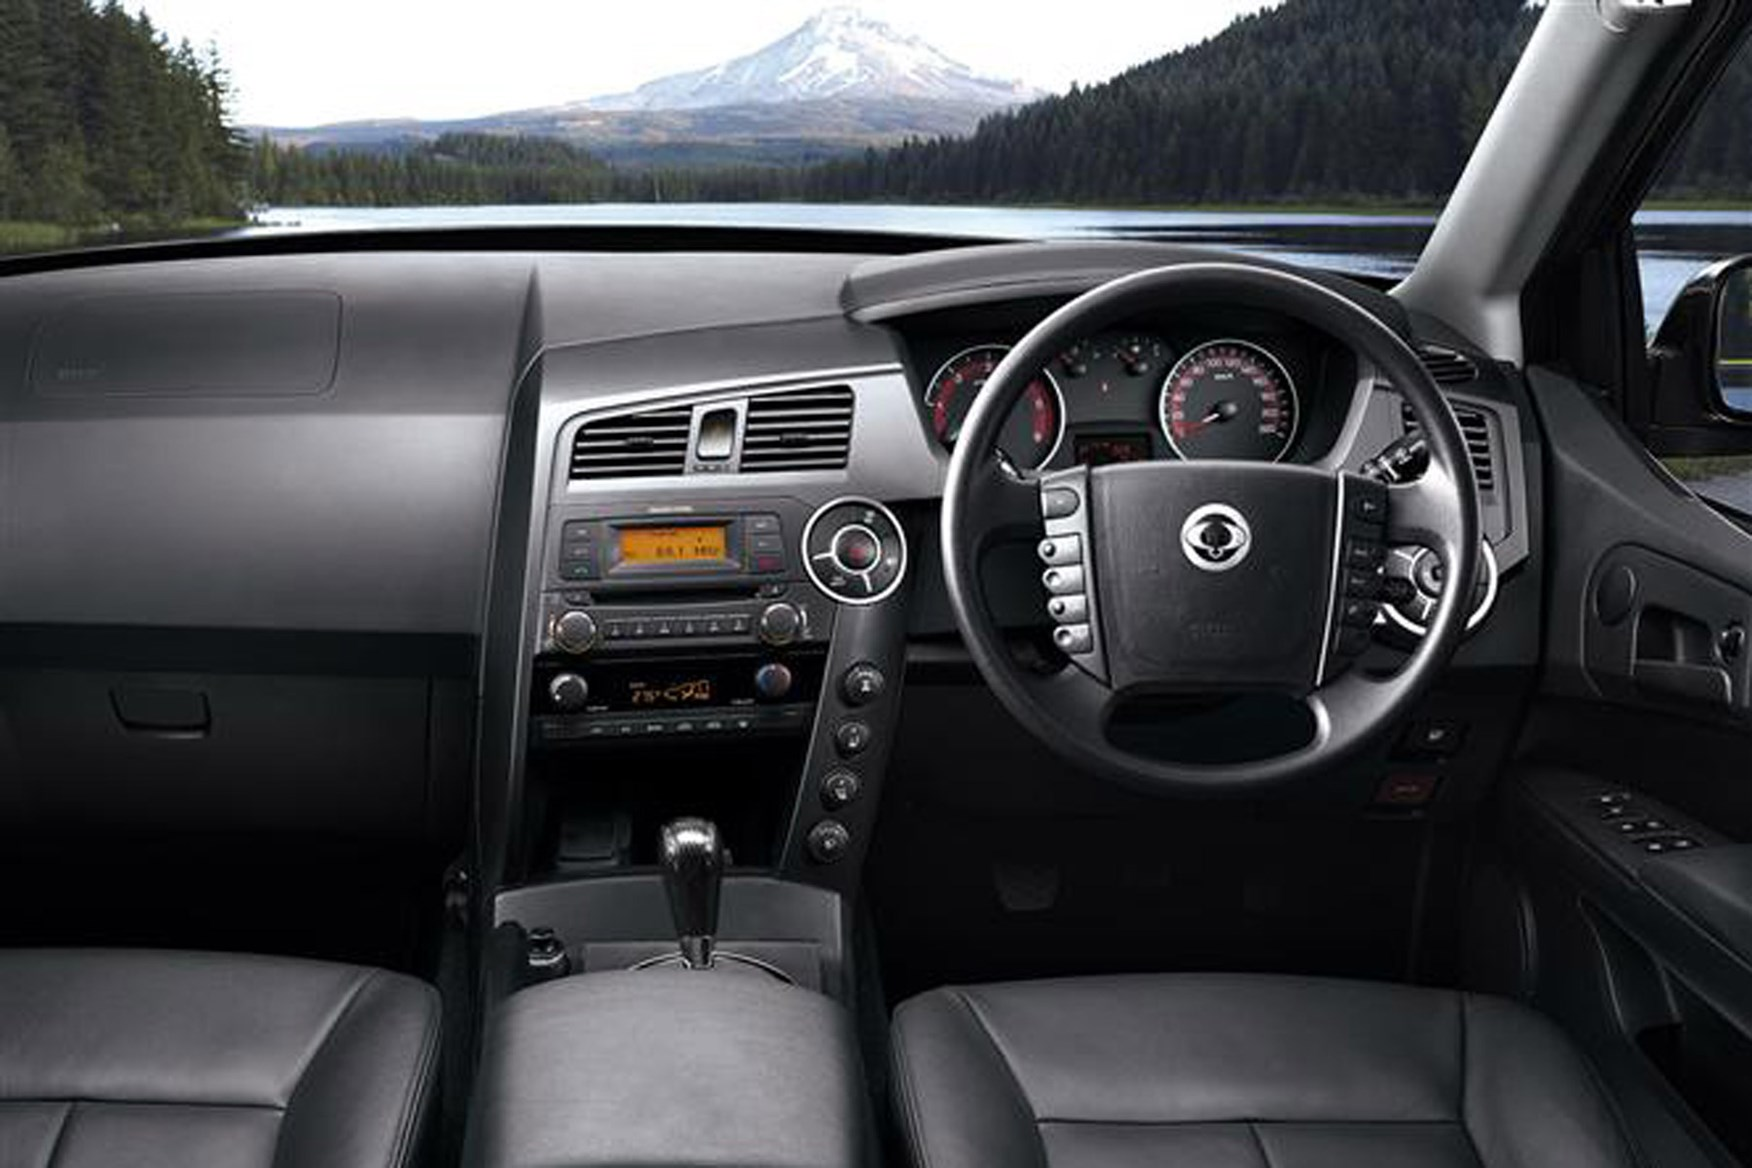 SsangYong Korando Sports review on Parkers Vans - interior